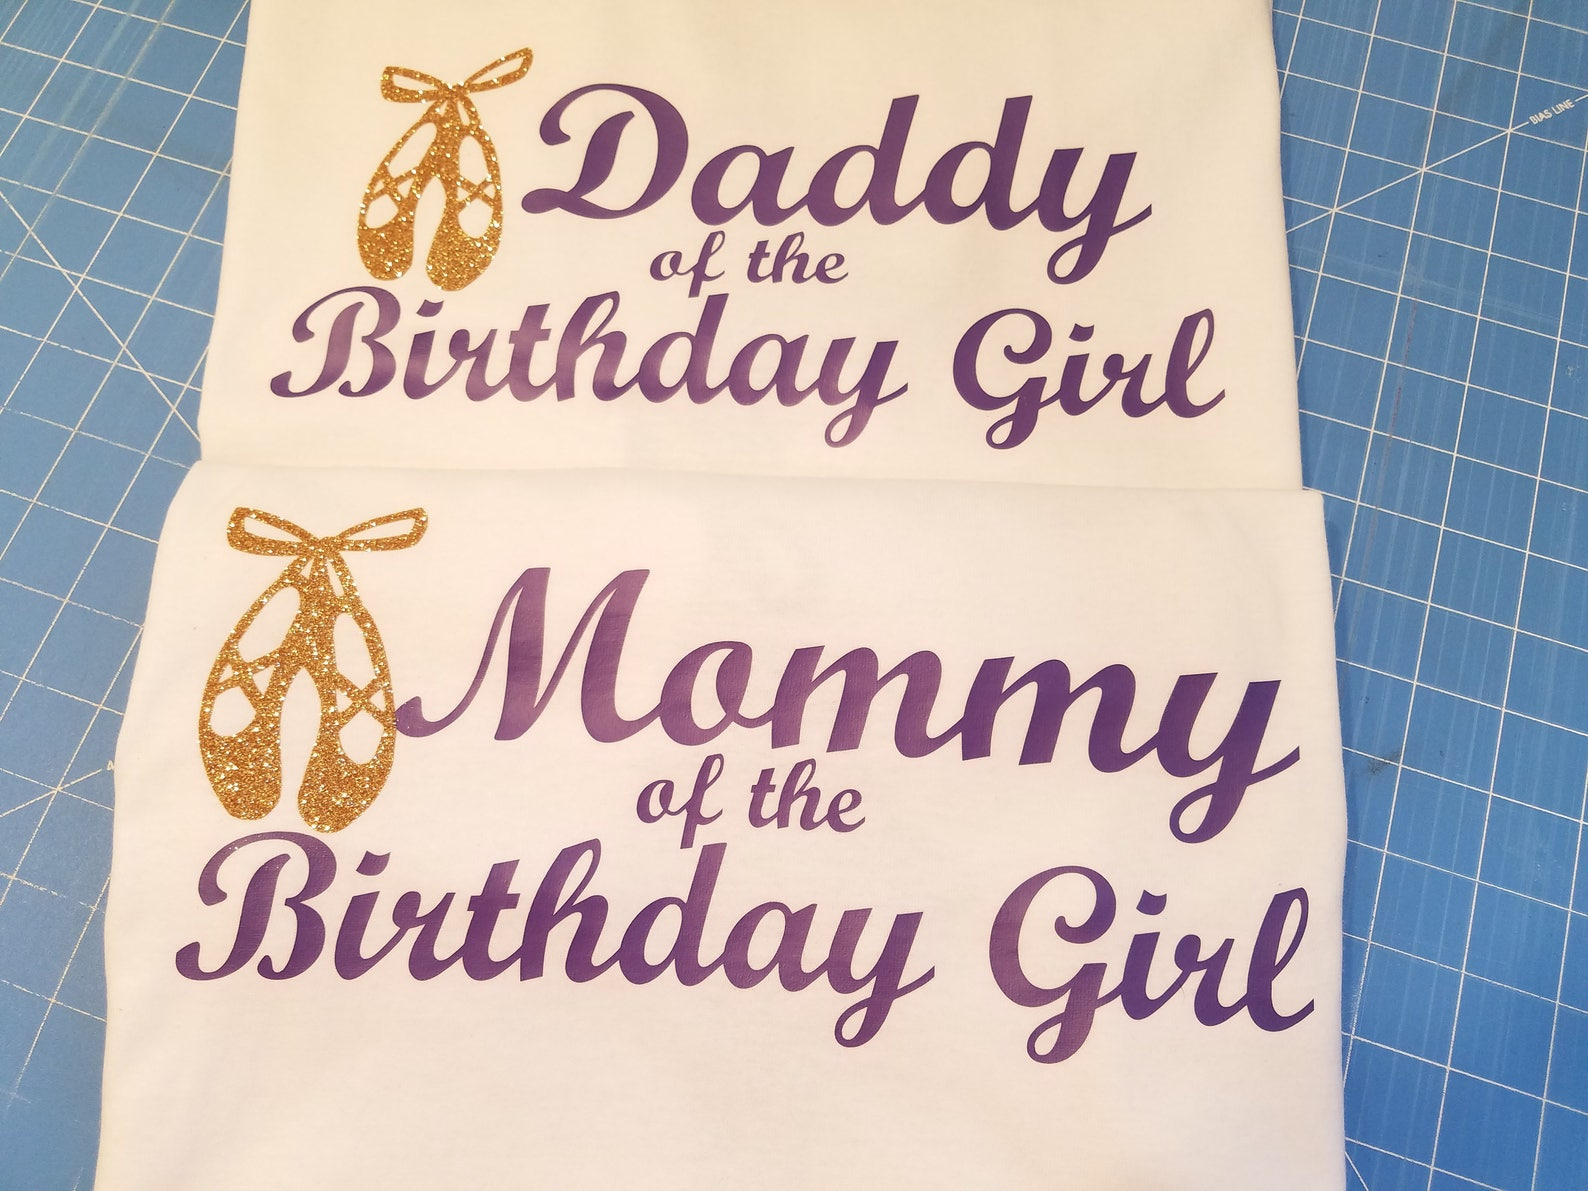 ballet mommy daddy of the birthday girl tshirt set, ballerina birthday shirts, white unisex shirts with purple and glitter balle